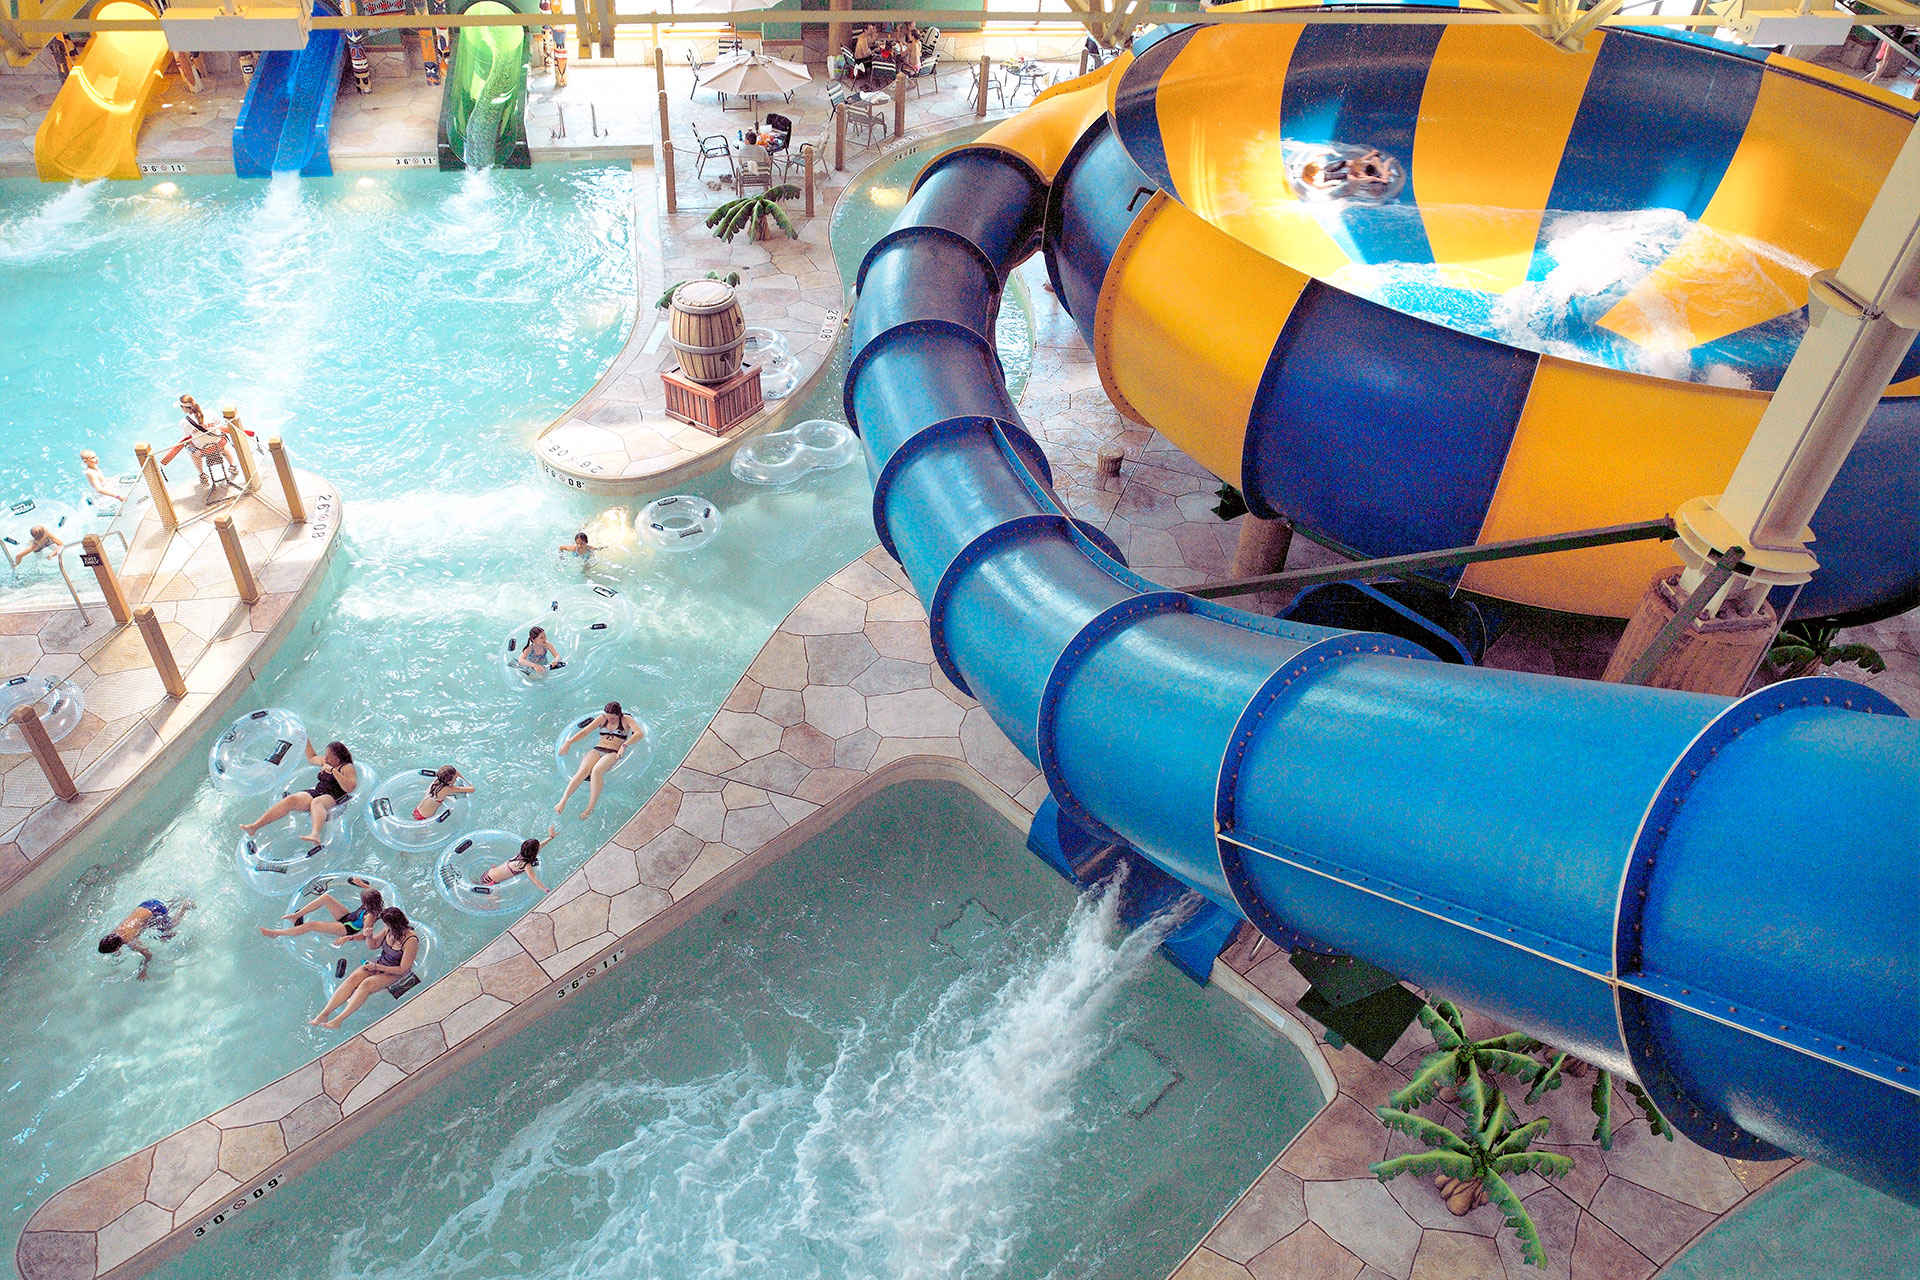 pool slide at Great Wolf Lodge; Courtesy of Great Wolf Lodge